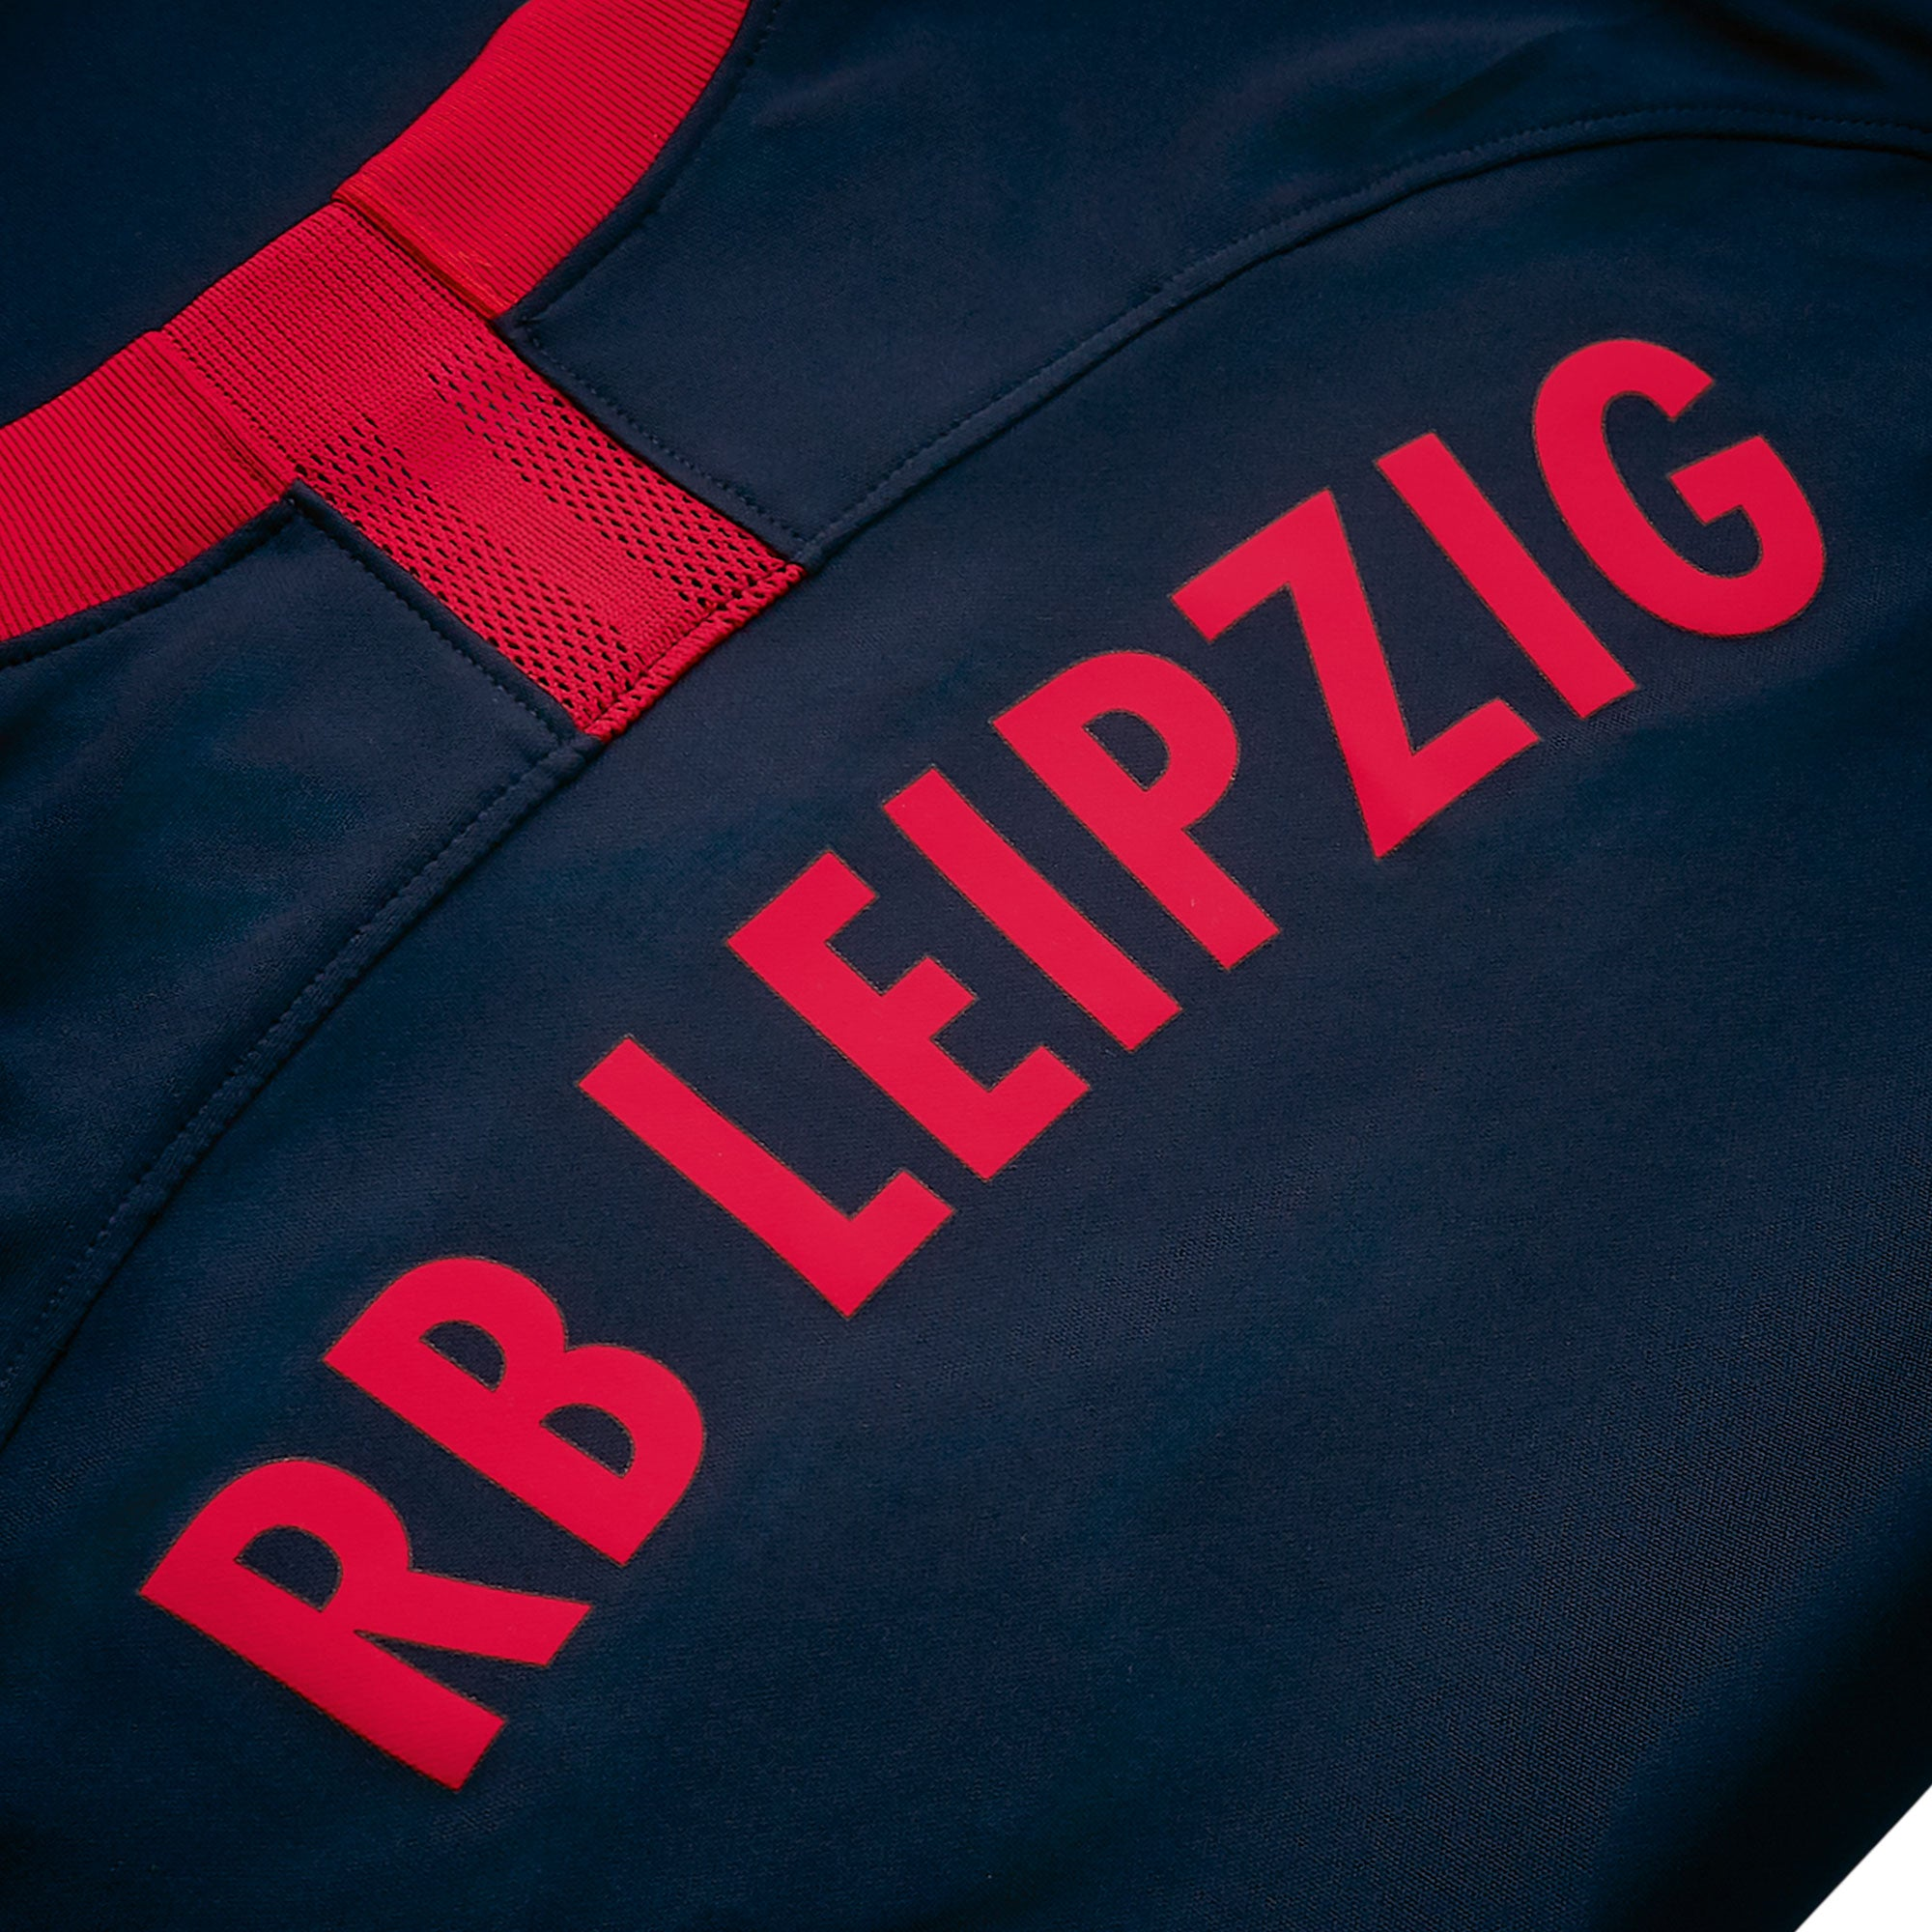 Rb Leipzig 19 20 Away Jersey Red Bull Shop Us